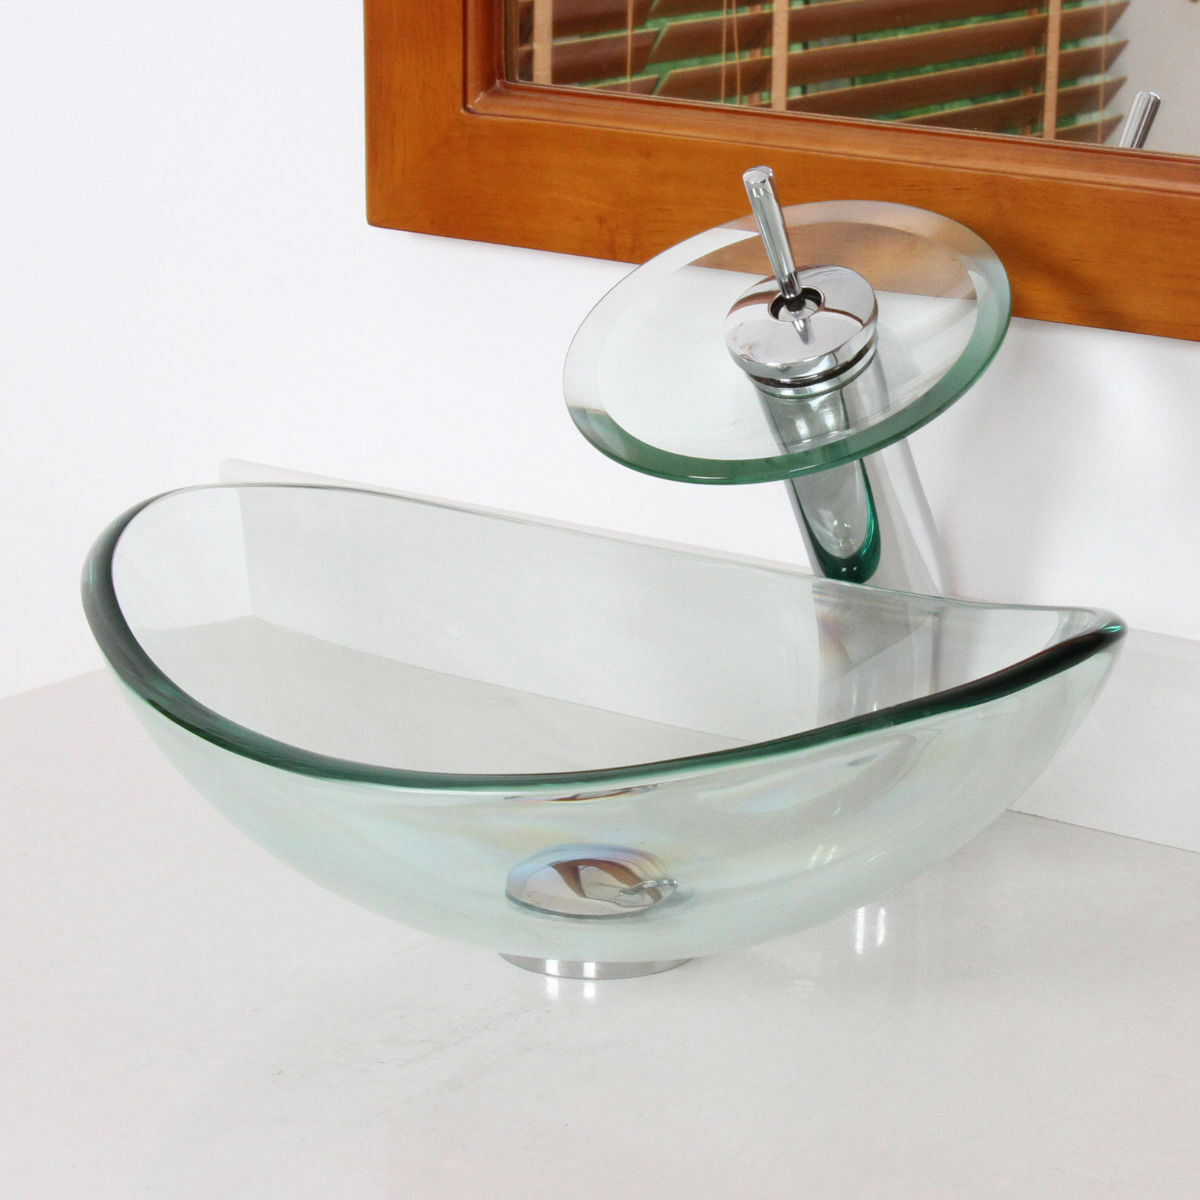 wonline oval clear tempered glass bathroom vessel sink bowl without overflow equipped with waterfall glass faucet pop up drain combo walmart com